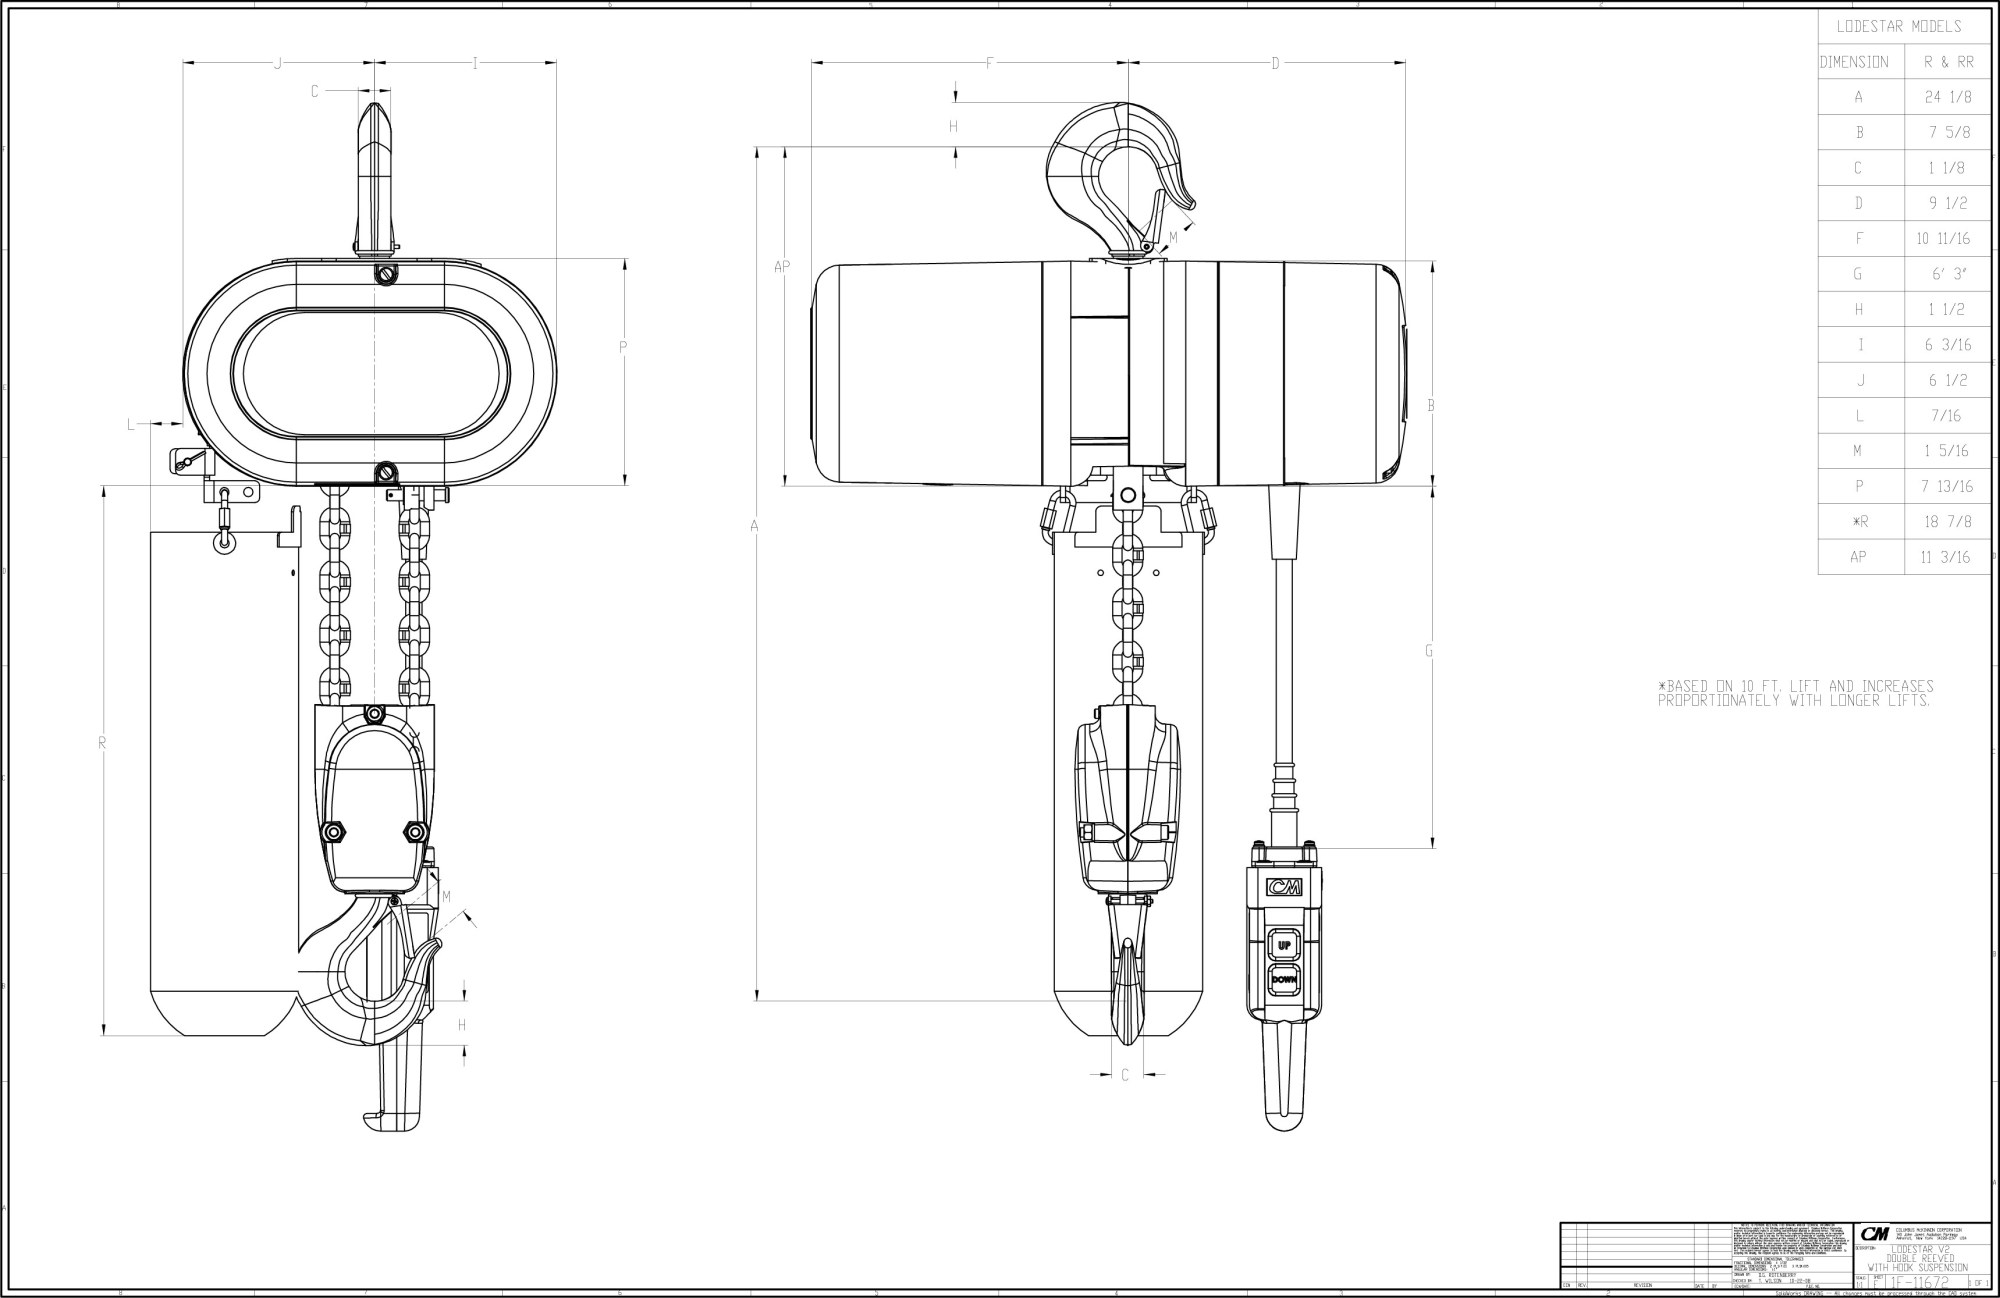 hight resolution of  wiring diagram on cm lodestar product code 3507 cm lodestar electric chain hoist